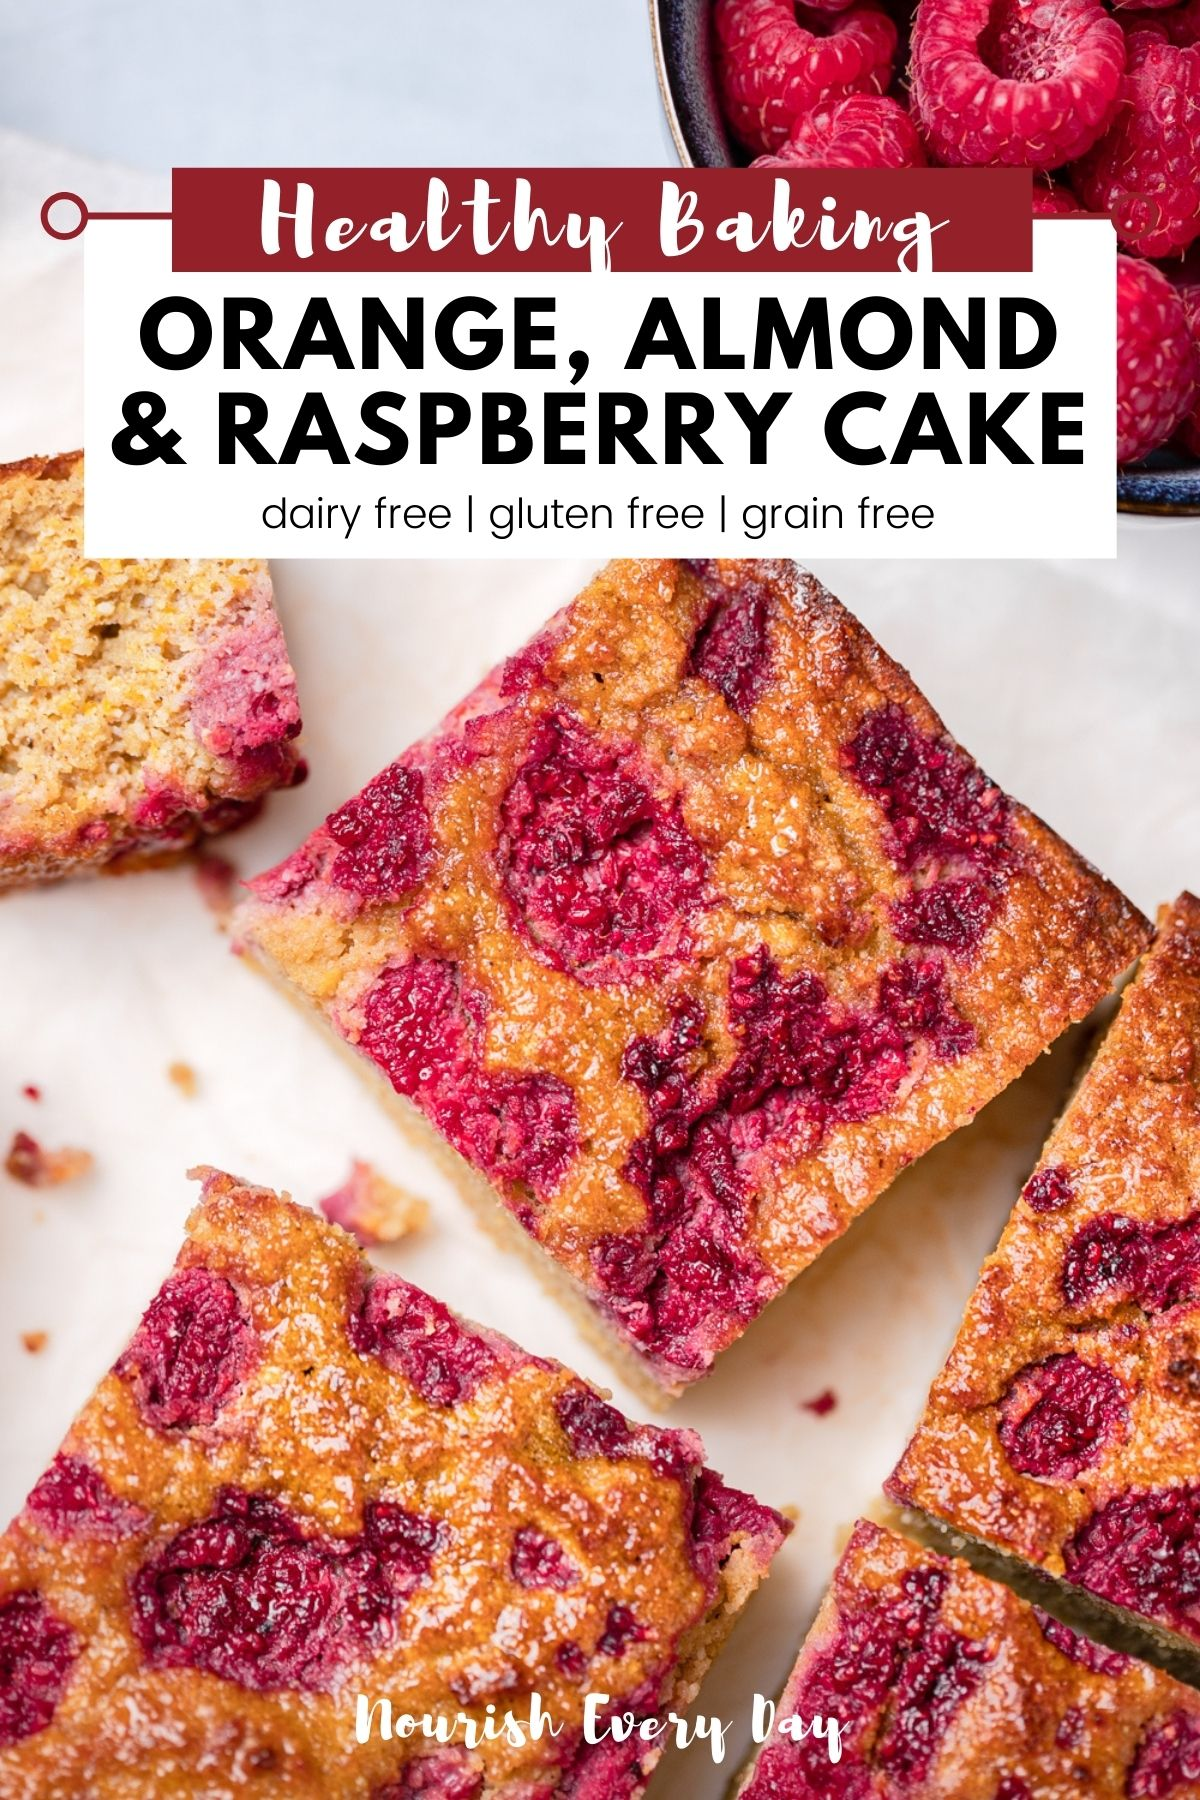 Orange Almond and Raspberry Cake Recipe Pin by Nourish Every Day Blog